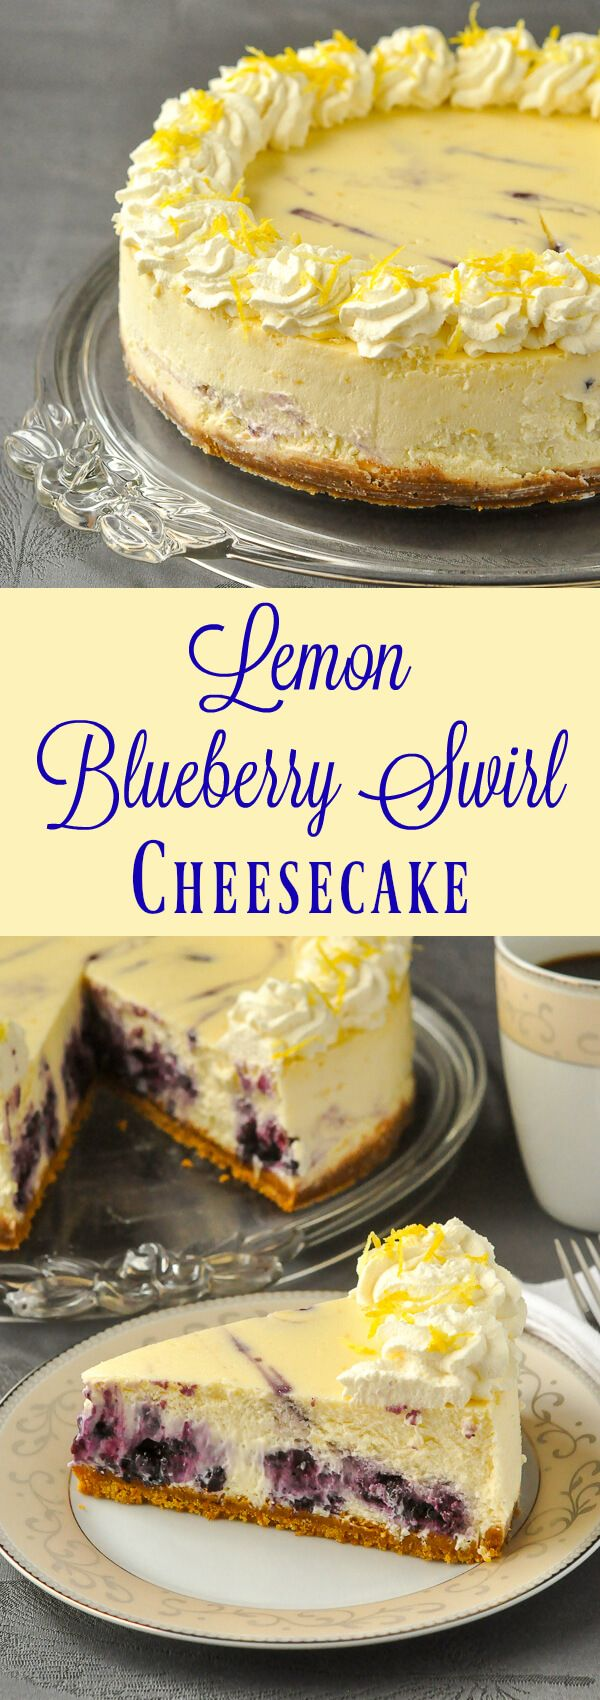 Lemon Blueberry Swirl Cheesecake - two extremely complimentary flavours come together deliciously when a blueberry compote gets swirled through a creamy lemon c